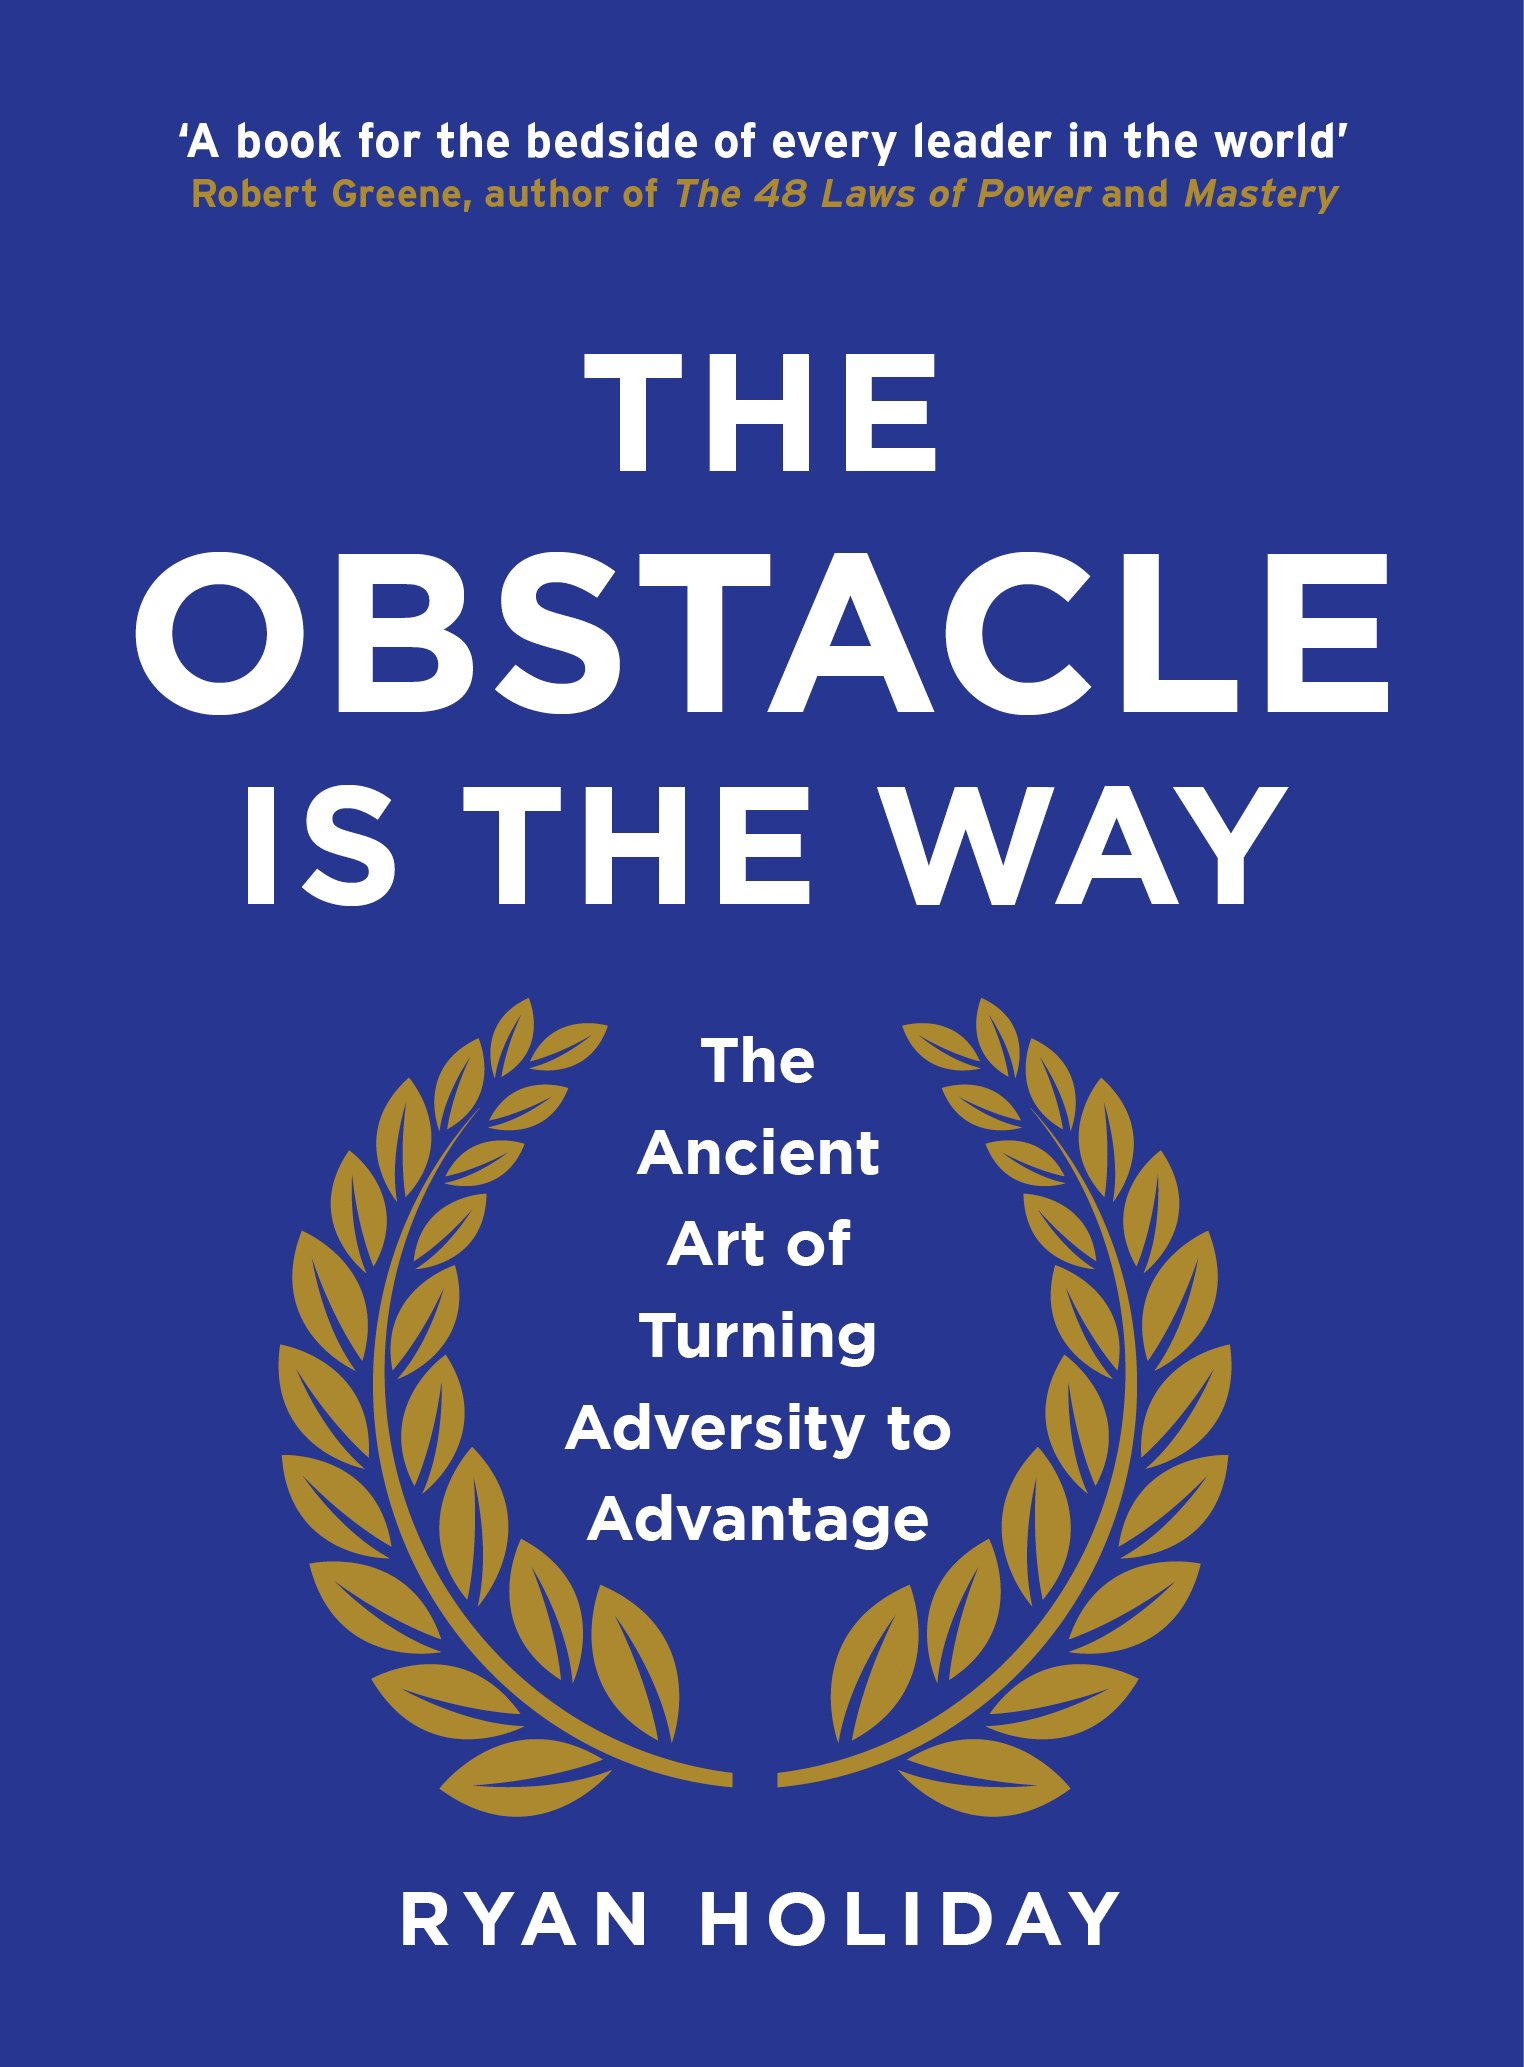 The Obstacle Is The Way - Ryan Holiday - Founder Book Club